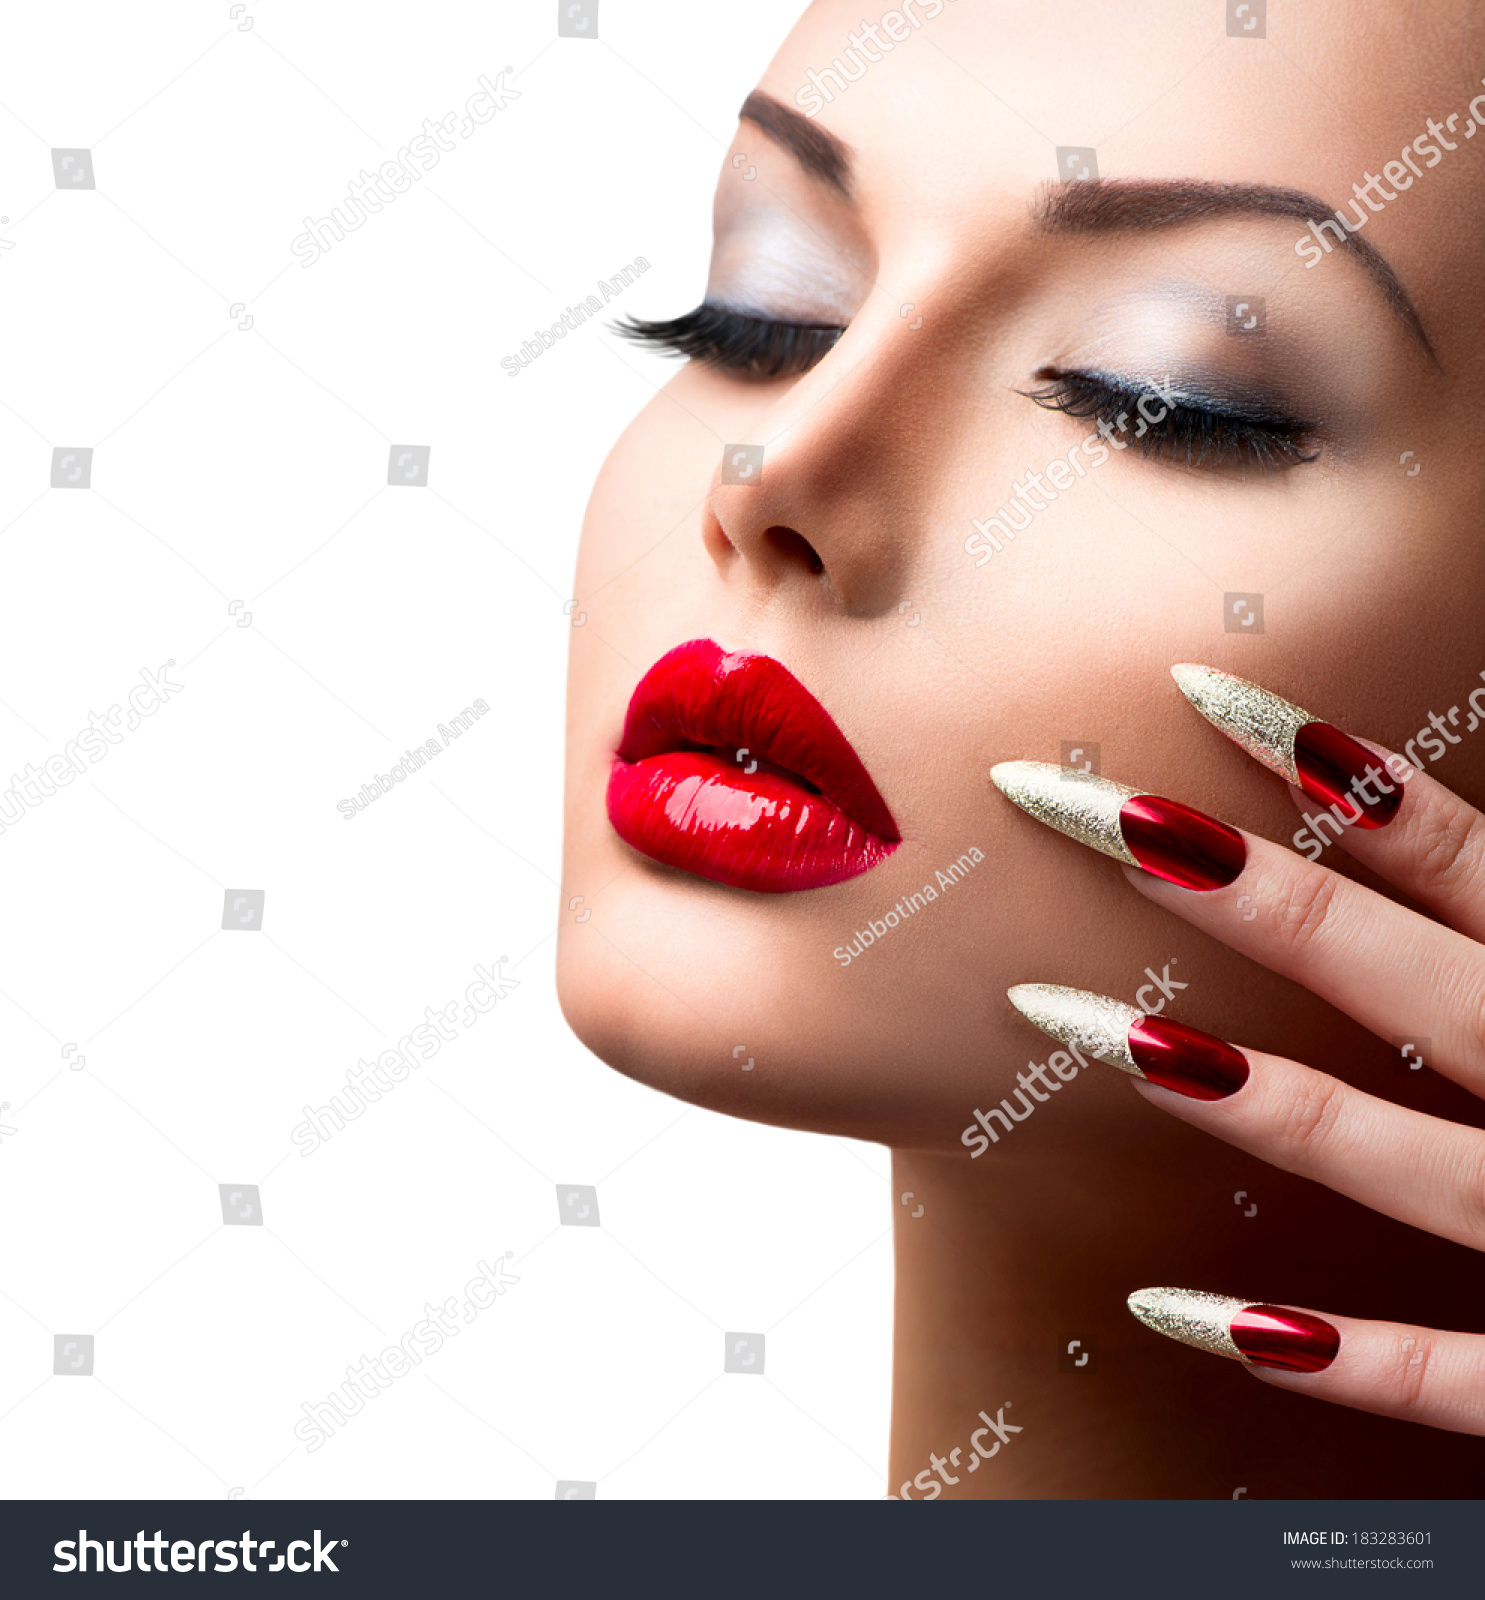 Free Manicure Beauty Hands Makeover: Royalty-free Fashion Beauty Model Girl. Manicure And